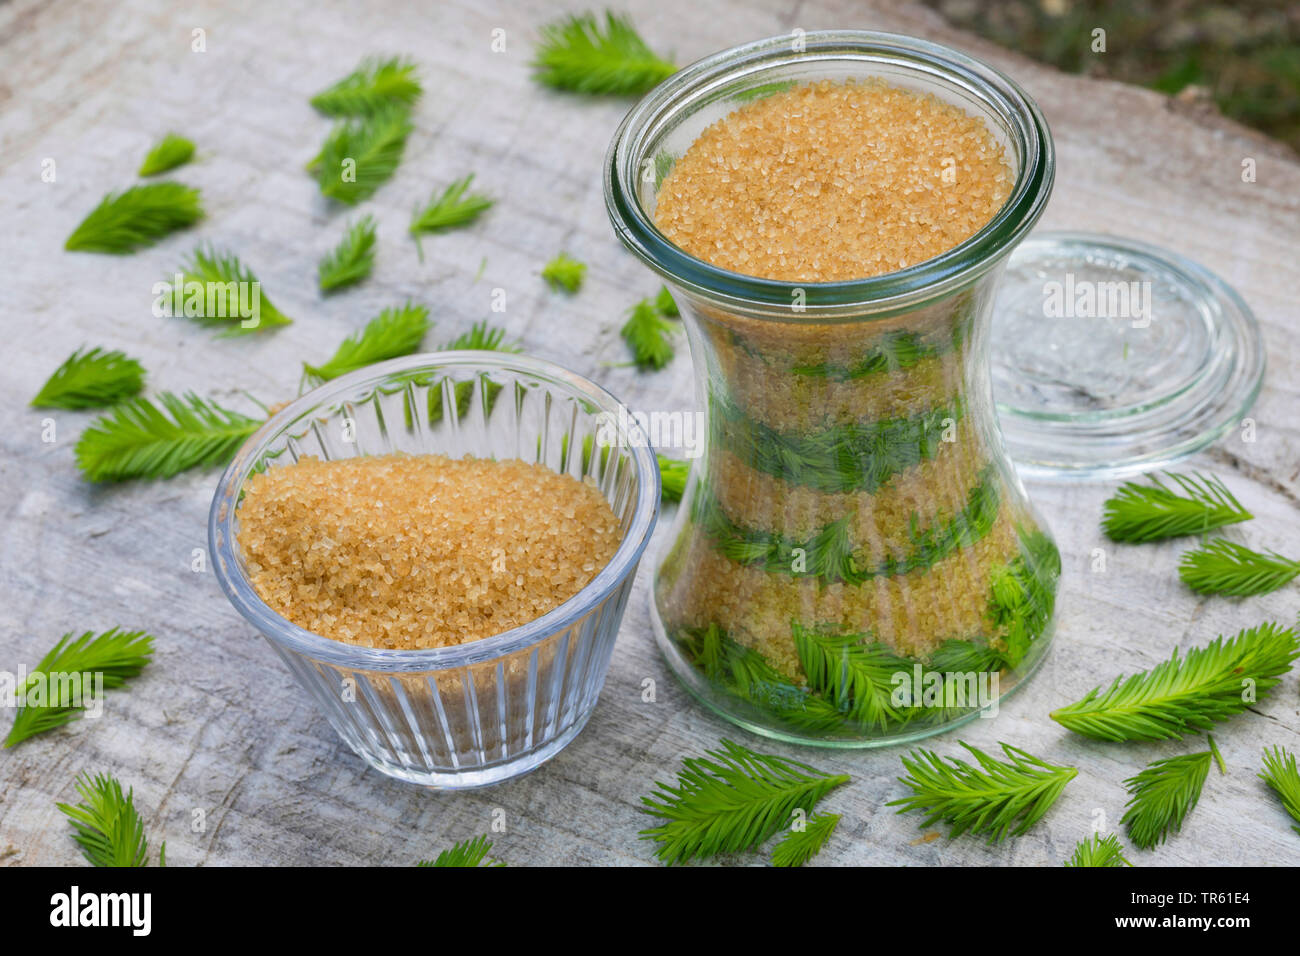 Norway spruce (Picea abies), Maiwipferl-Sirup, selfmade cough syrup from spruce sprouts, Germany - Stock Image